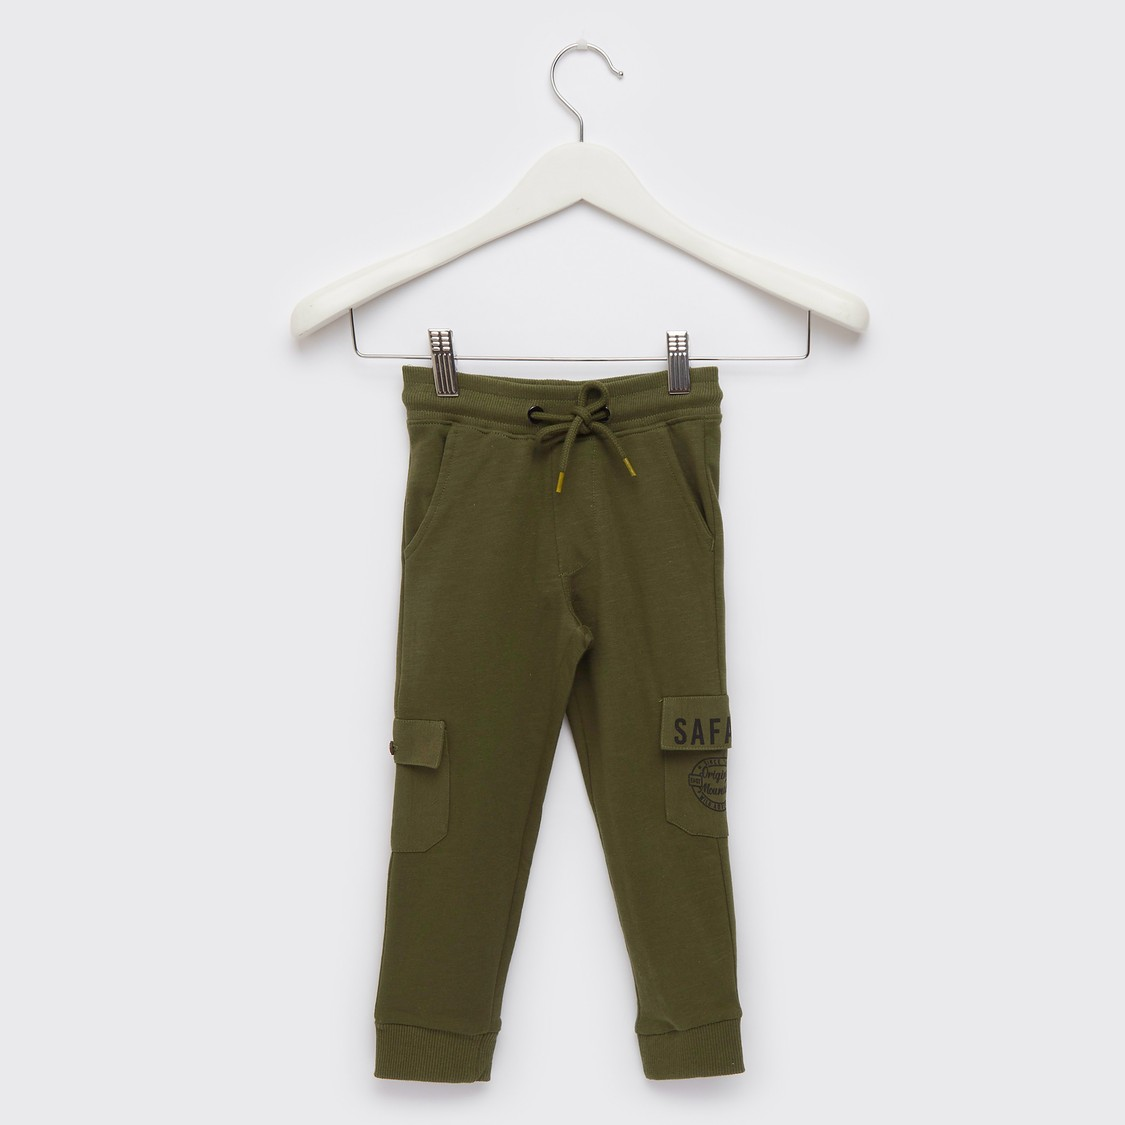 Text Print Knit Cargo Jog Pants with Pockets and Drawstring Closure